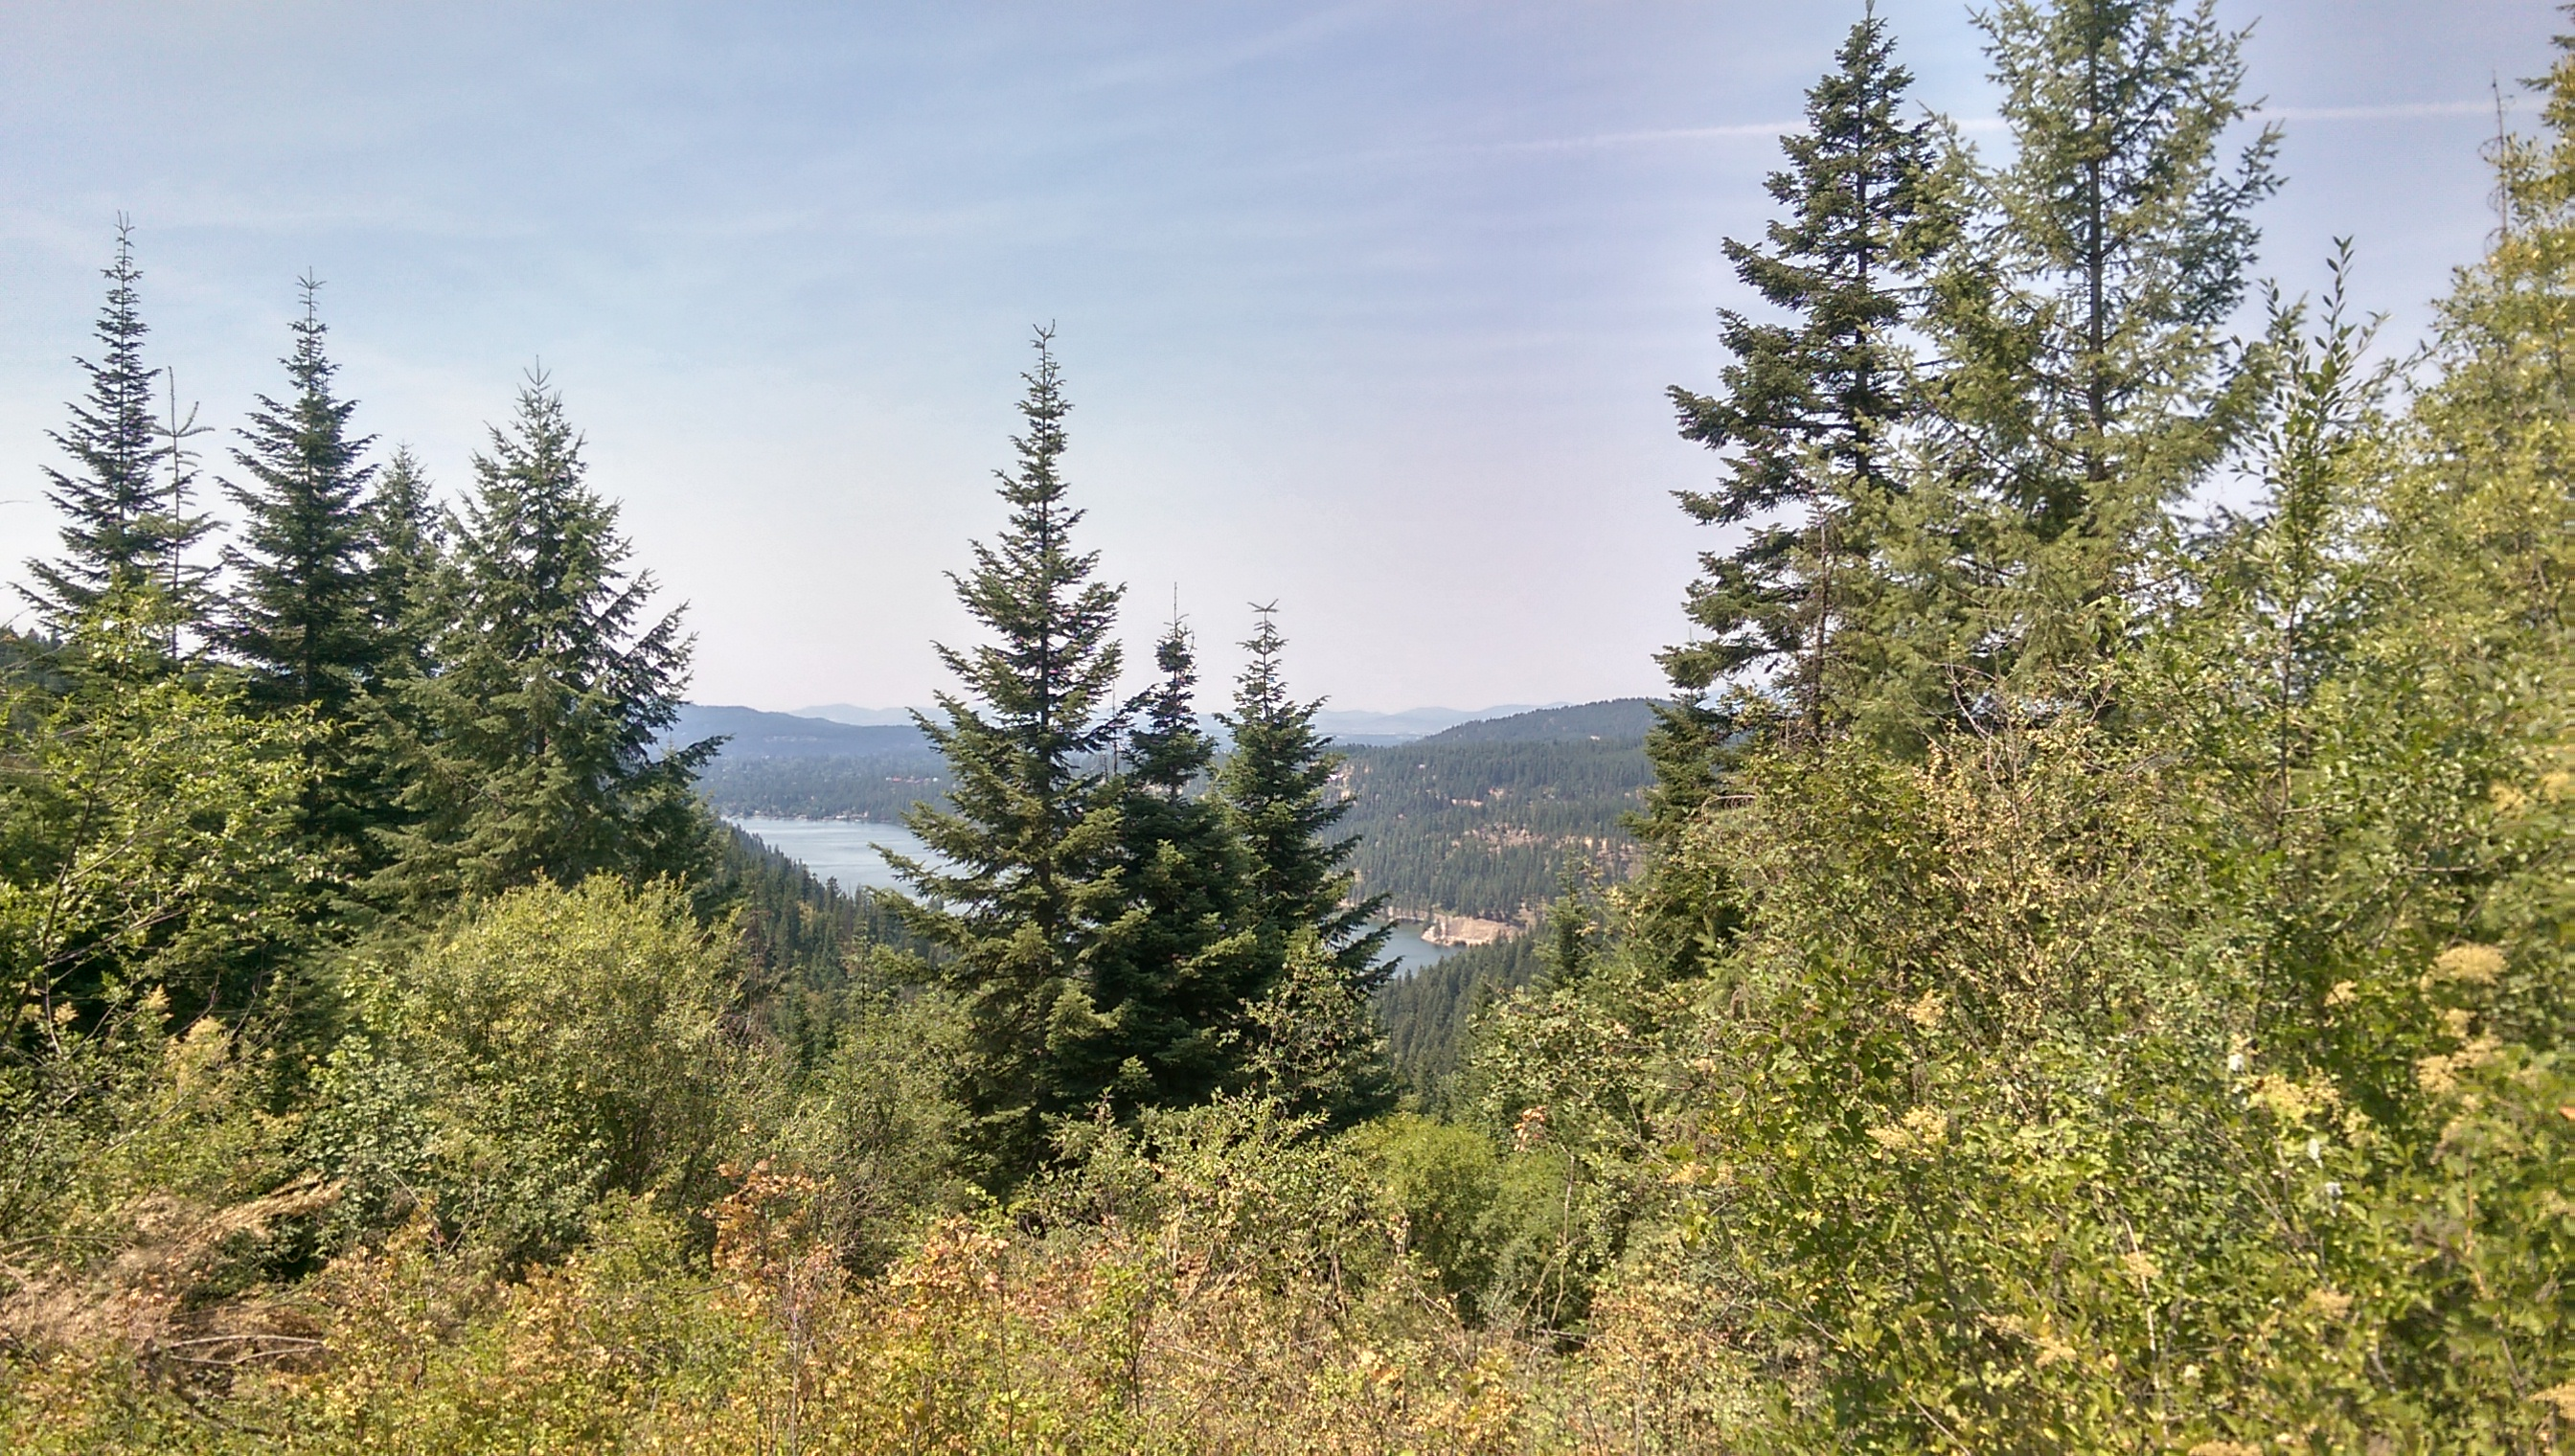 Land for Sale at 10 Acres with Amazing Views 995 S. Saddleback Dr Coeur D Alene, Idaho, 83814 United States